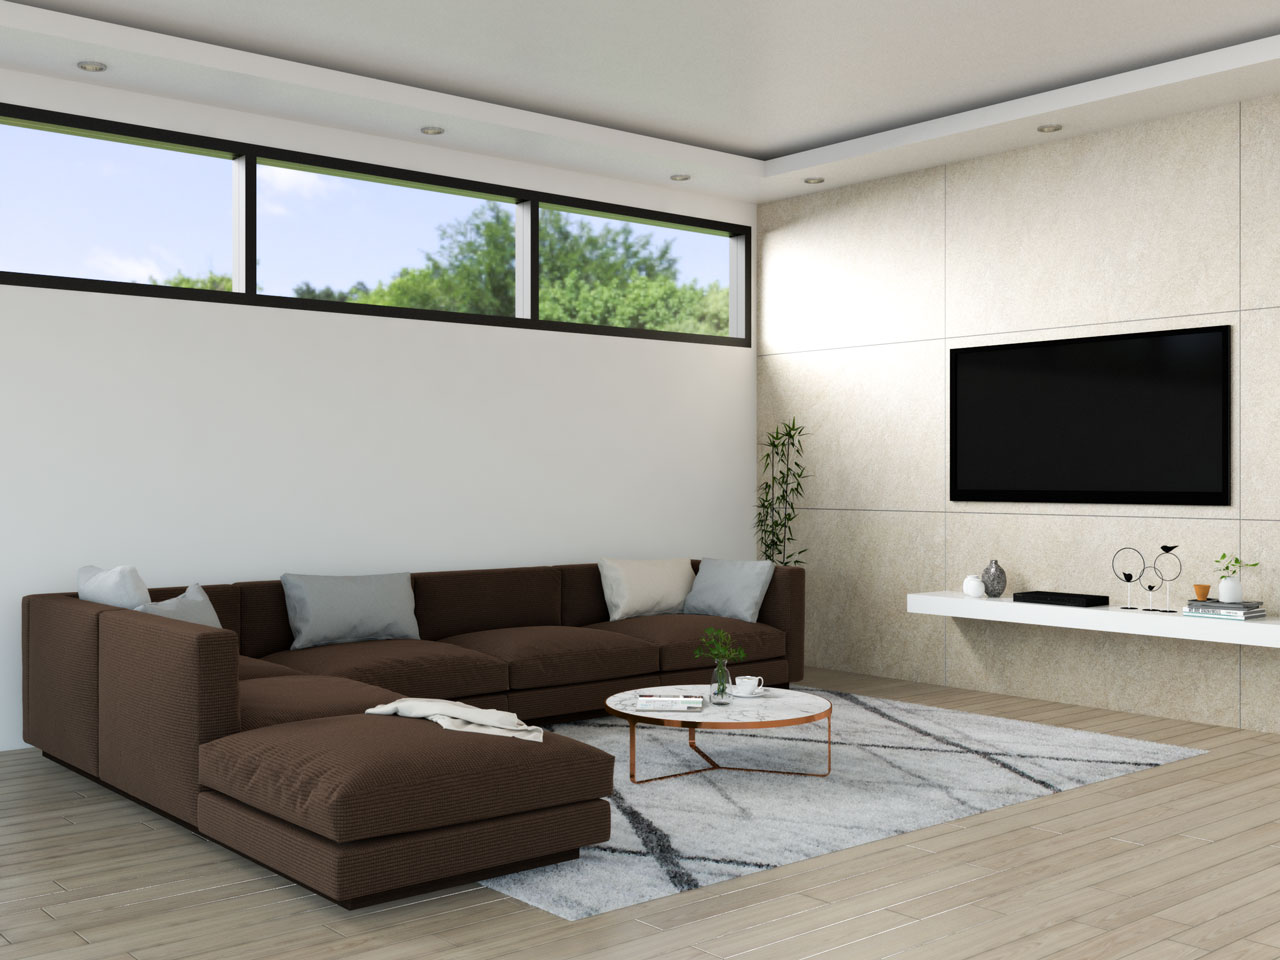 Brown sofa with light gray accents